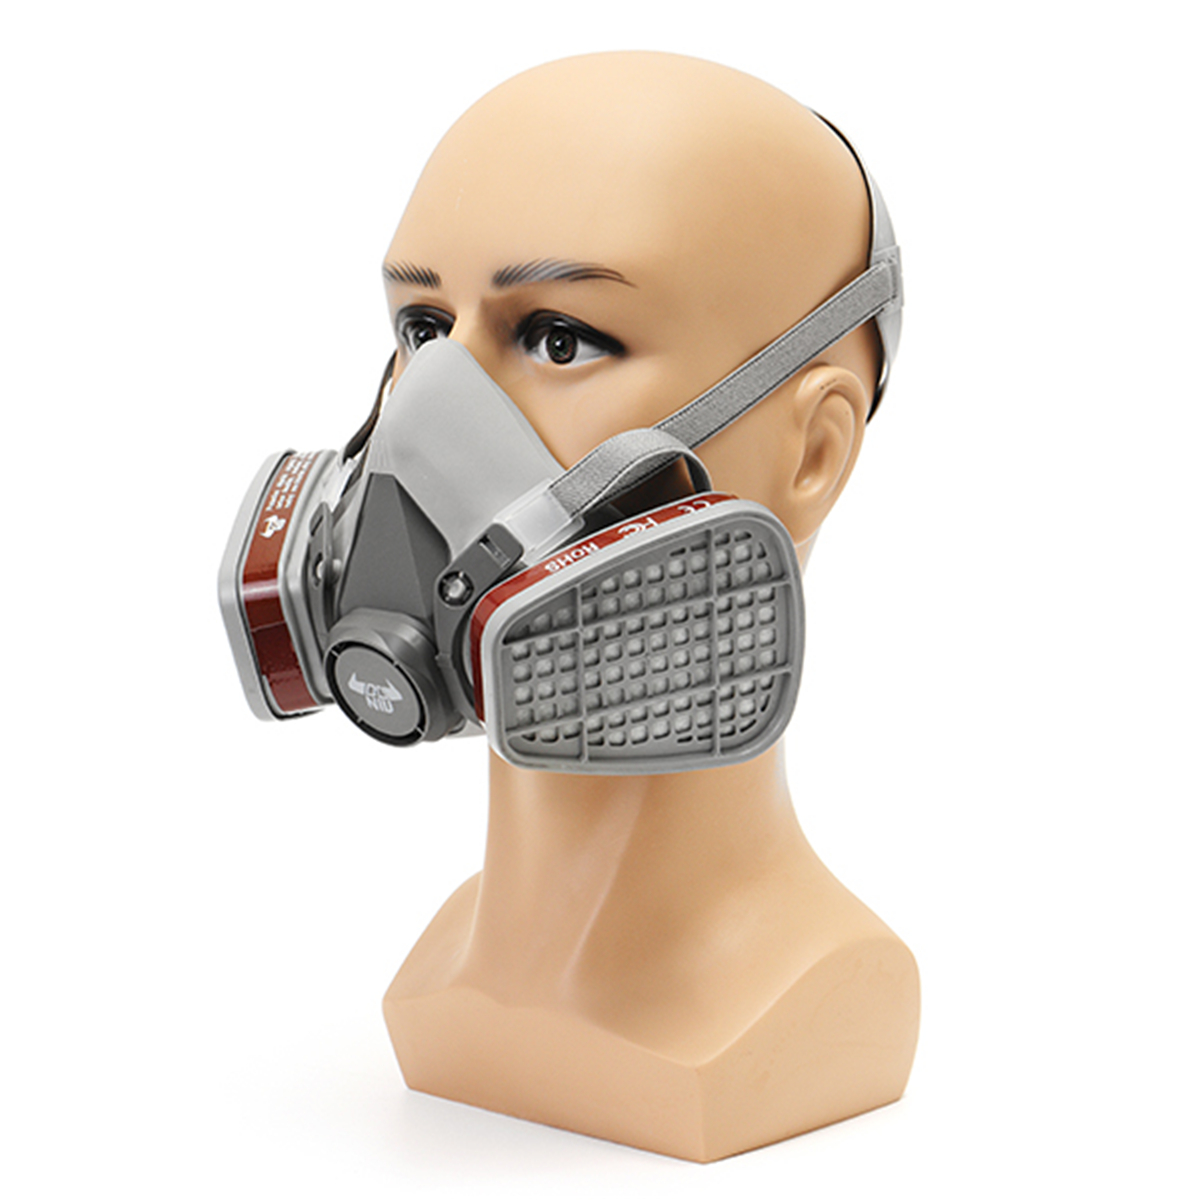 DANIU Protective Dust Mask Gas Comprehensive Cover Paint Chemical Masks Pesticide Gas Mask Dustproof Escape Breathing Apparatus high quality dustproof gas masks blue silica gel protective mask dust pesticides industrial safety safety masks